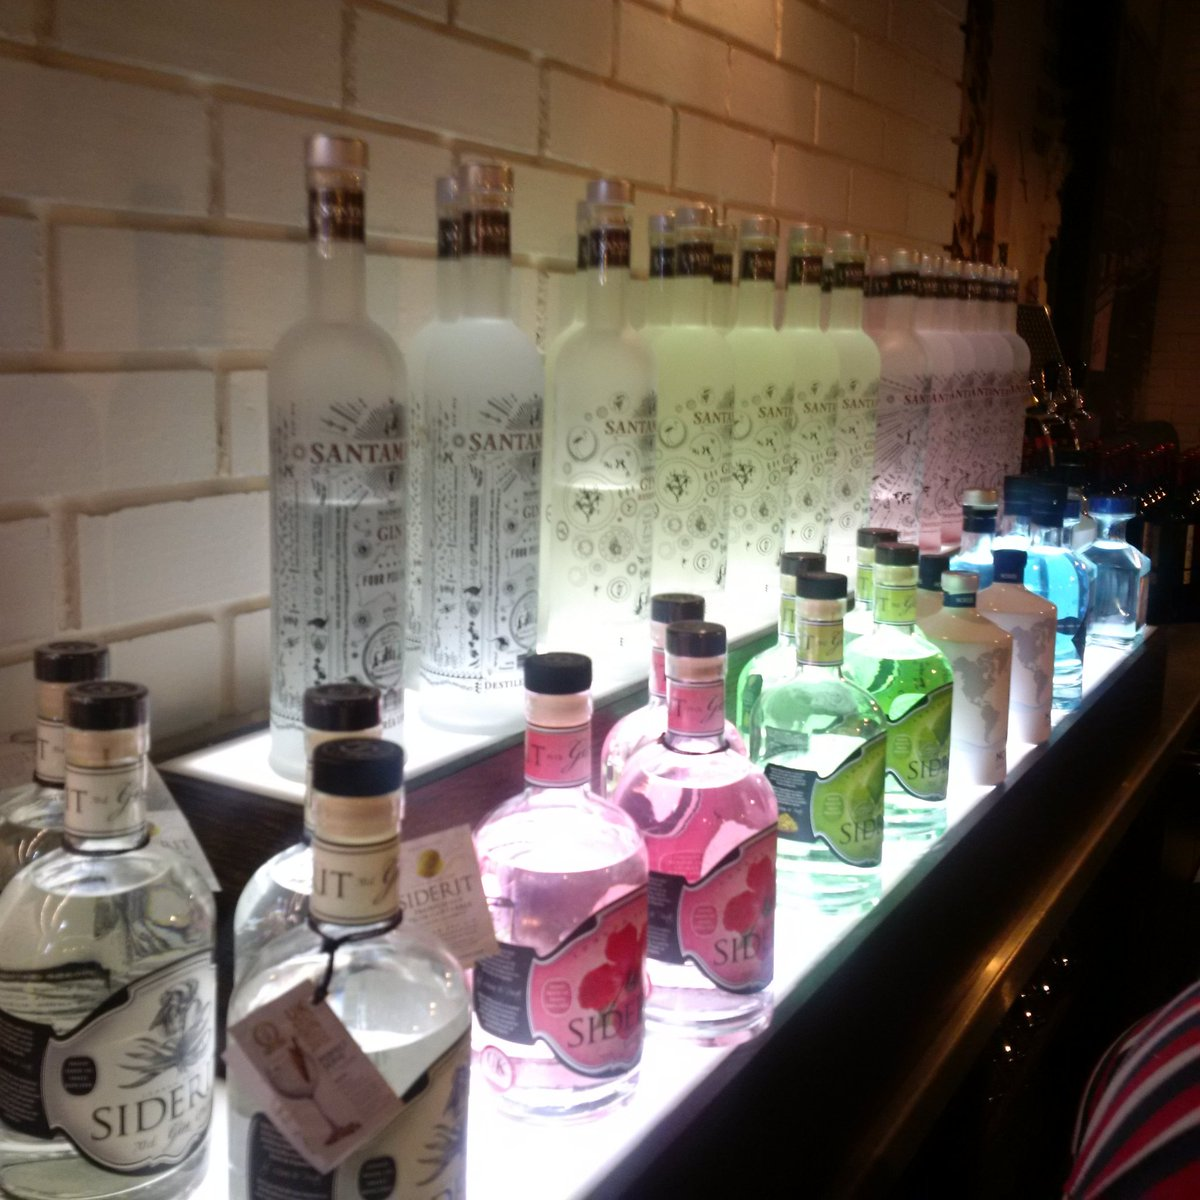 All our #Gintonic are #Spanish #gin from #Cantabria #Galicia #Madrid #basque &amp; #tonic from #Valencia #catalunya ..,<br>http://pic.twitter.com/9Cky9oFmMD